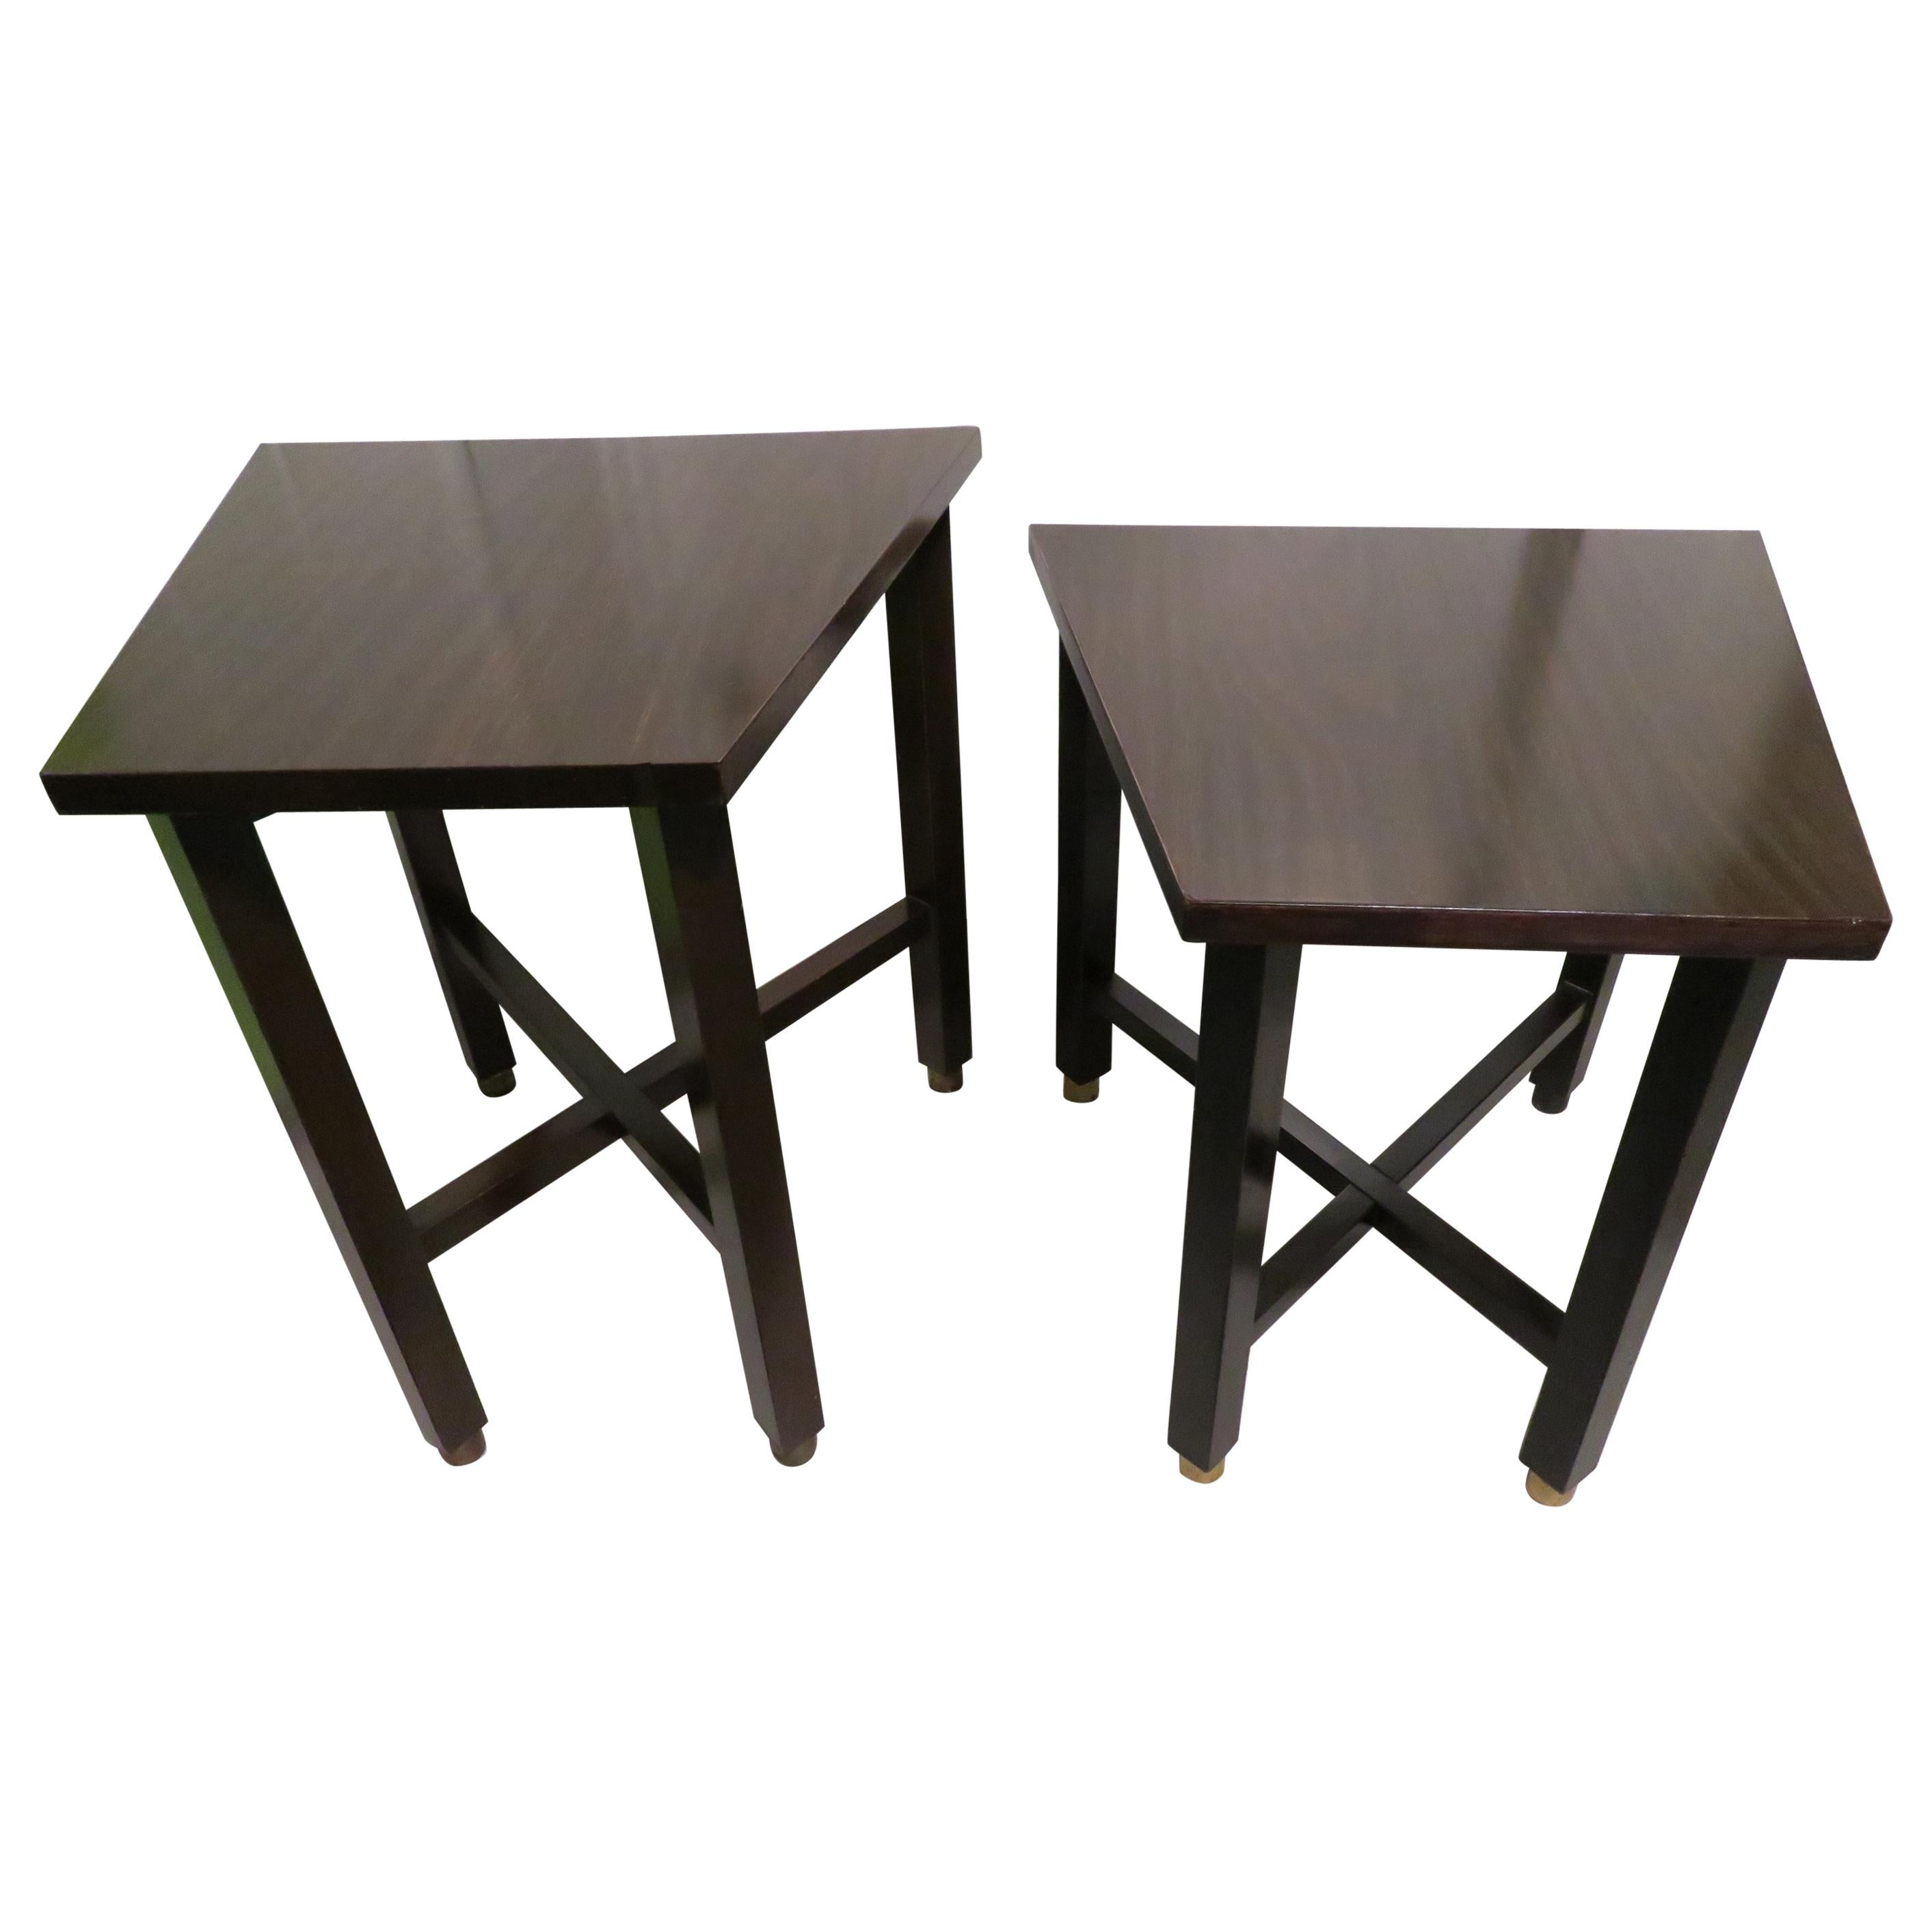 Wonderful Pair of Trapezoidal Walnut Side Table with Brass Sabots by Dunbar